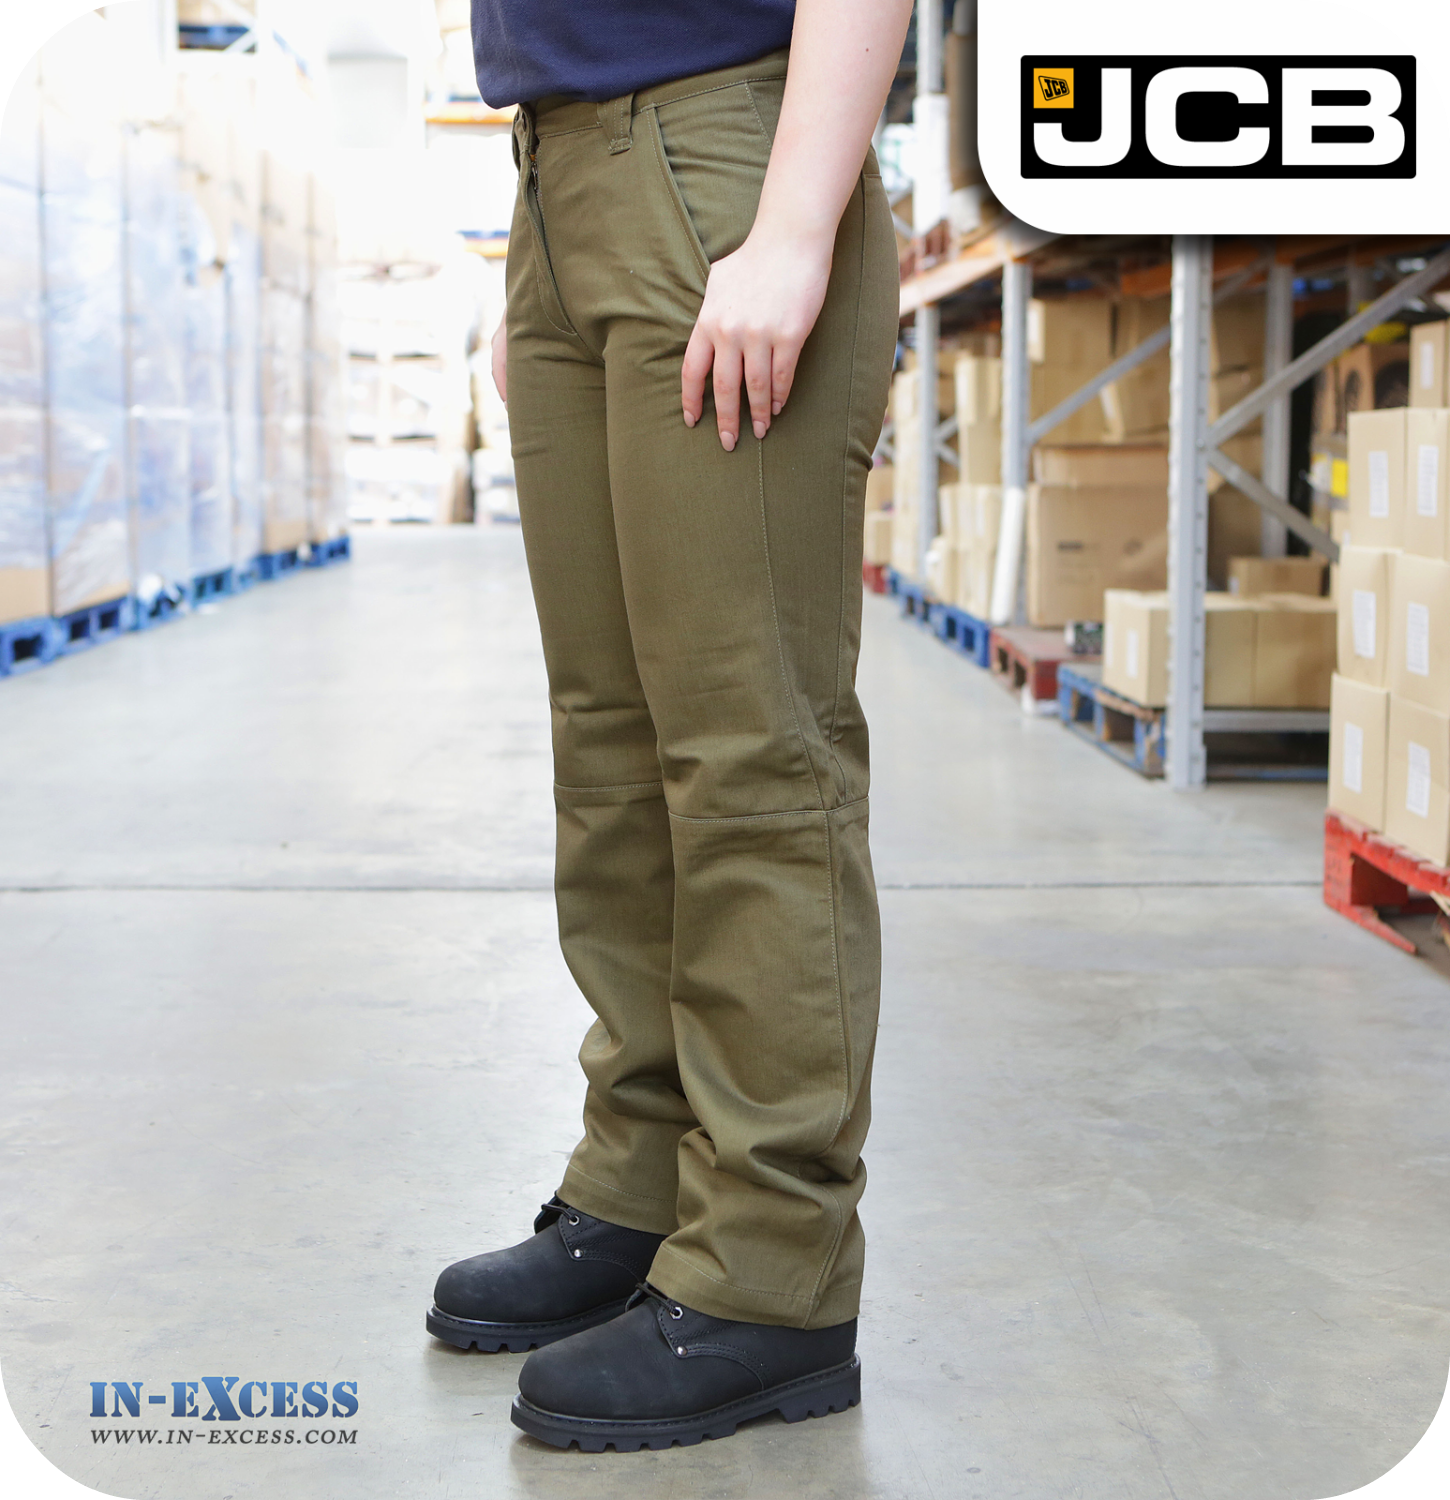 on feet at choose original arriving JCB Women's Workwear Trousers - Khaki Green